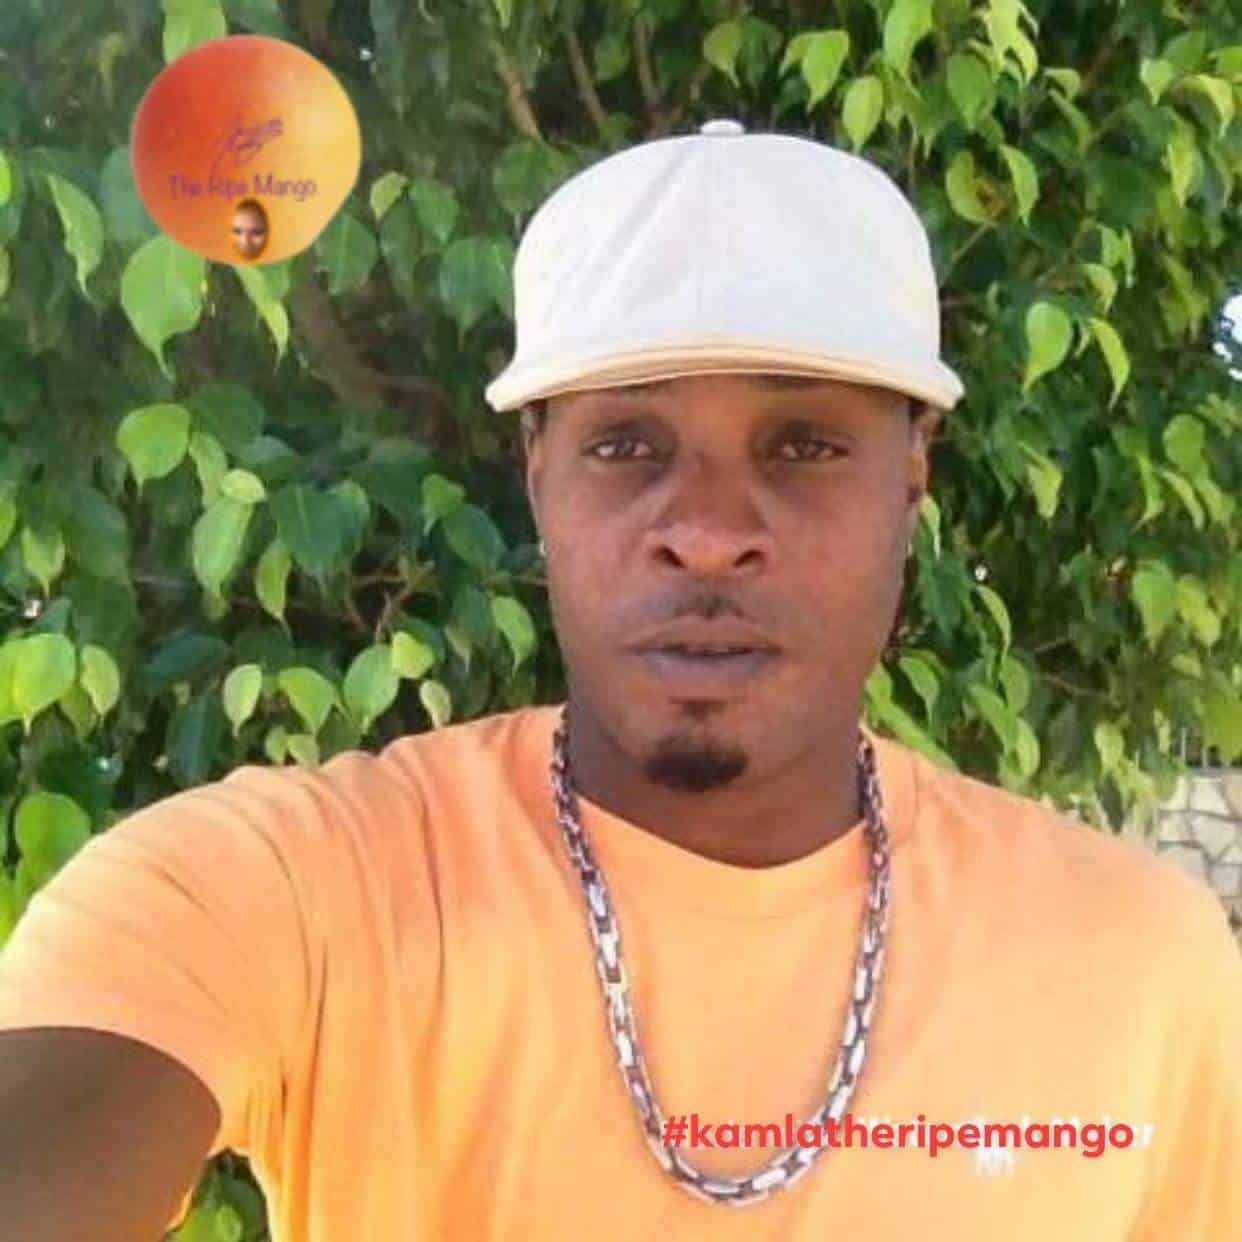 Common Law Couple Murdered in St. Catherine